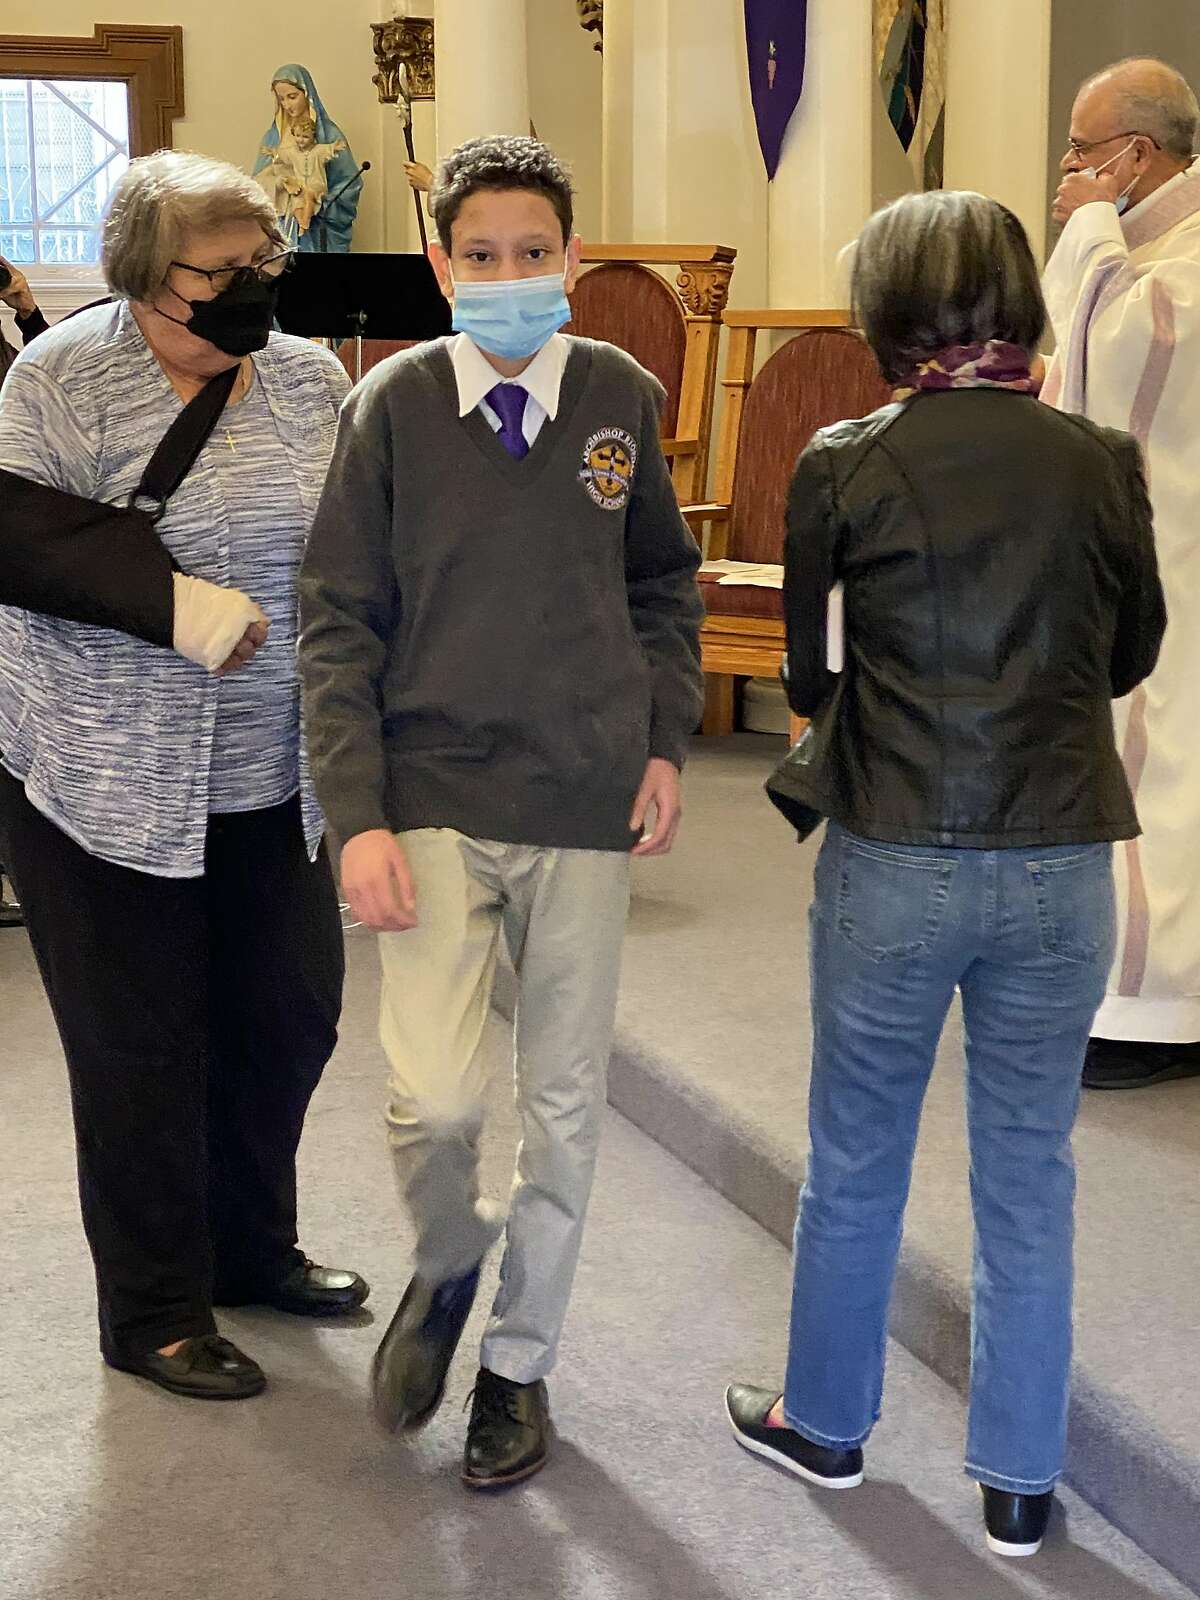 The confirmation of Aidan Timothy Francis Fisher-Paulson at St. John the Evangelist Catholic Church in San Francisco on Saturday, March 20, 2021.